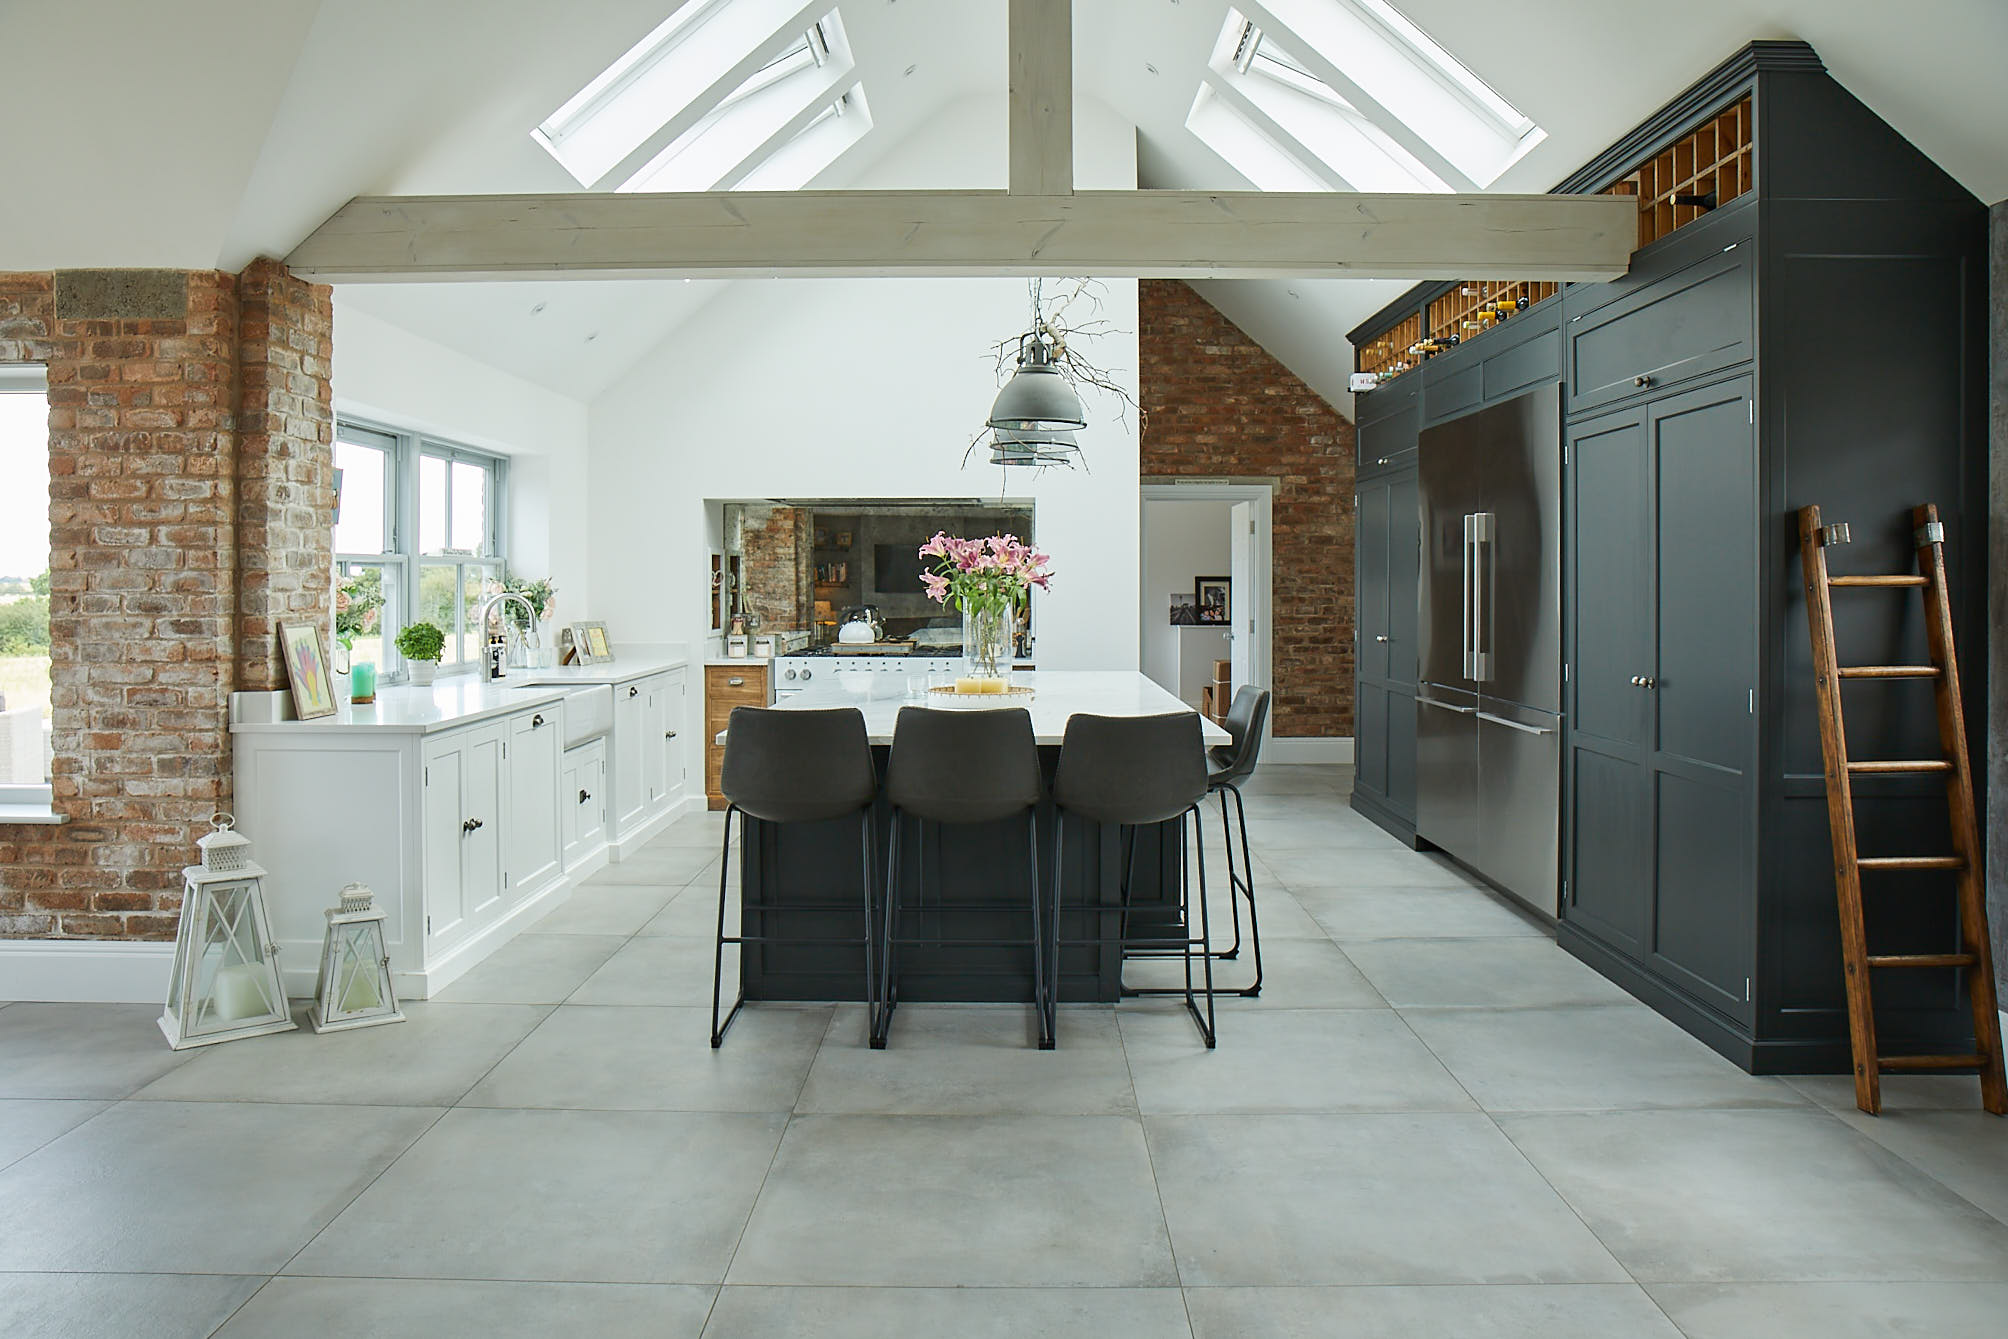 Lamp black kitchen units with leather barstools